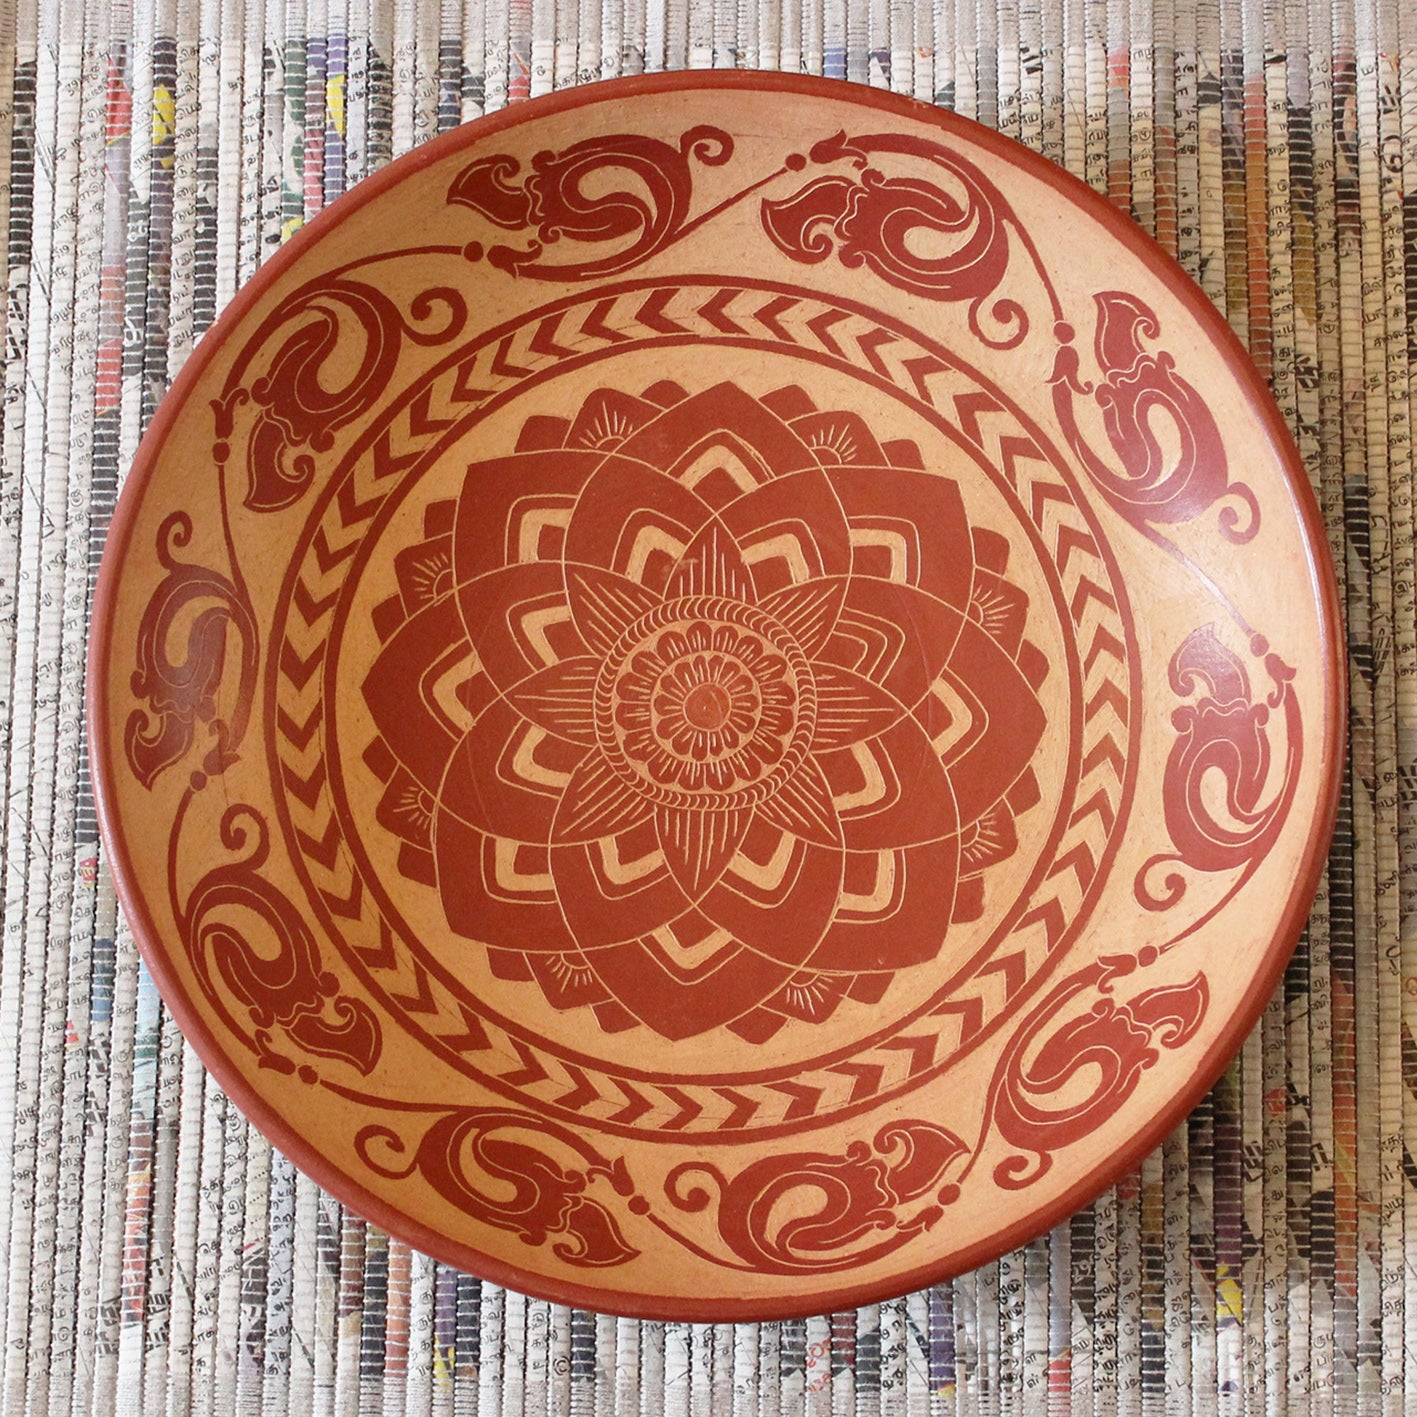 NEW! Terracotta plate with hand-etched design